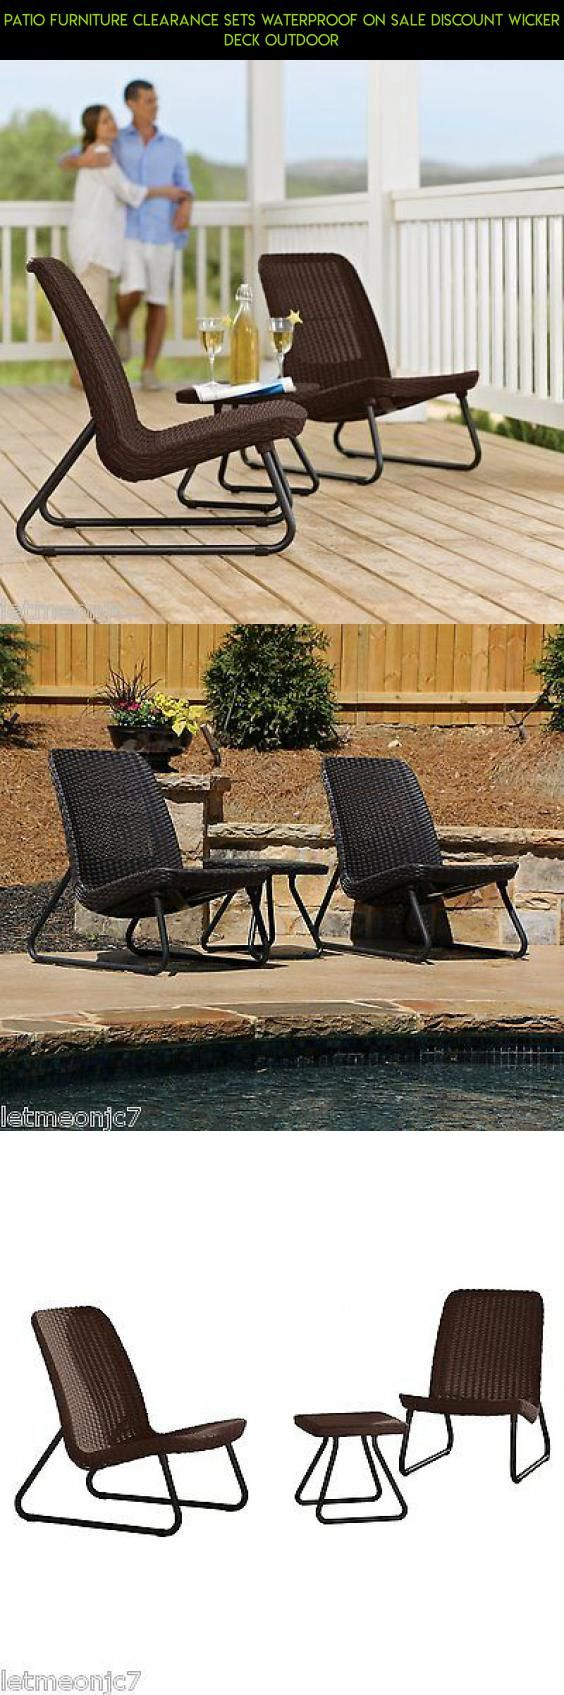 Patio Furniture Clearance Sets Waterproof On Sale Discount Wicker Deck Outdoor #furniture #plans #patio #products #tech #racing #gadgets #camera #on #fpv #technology #parts #shopping #kit #drone